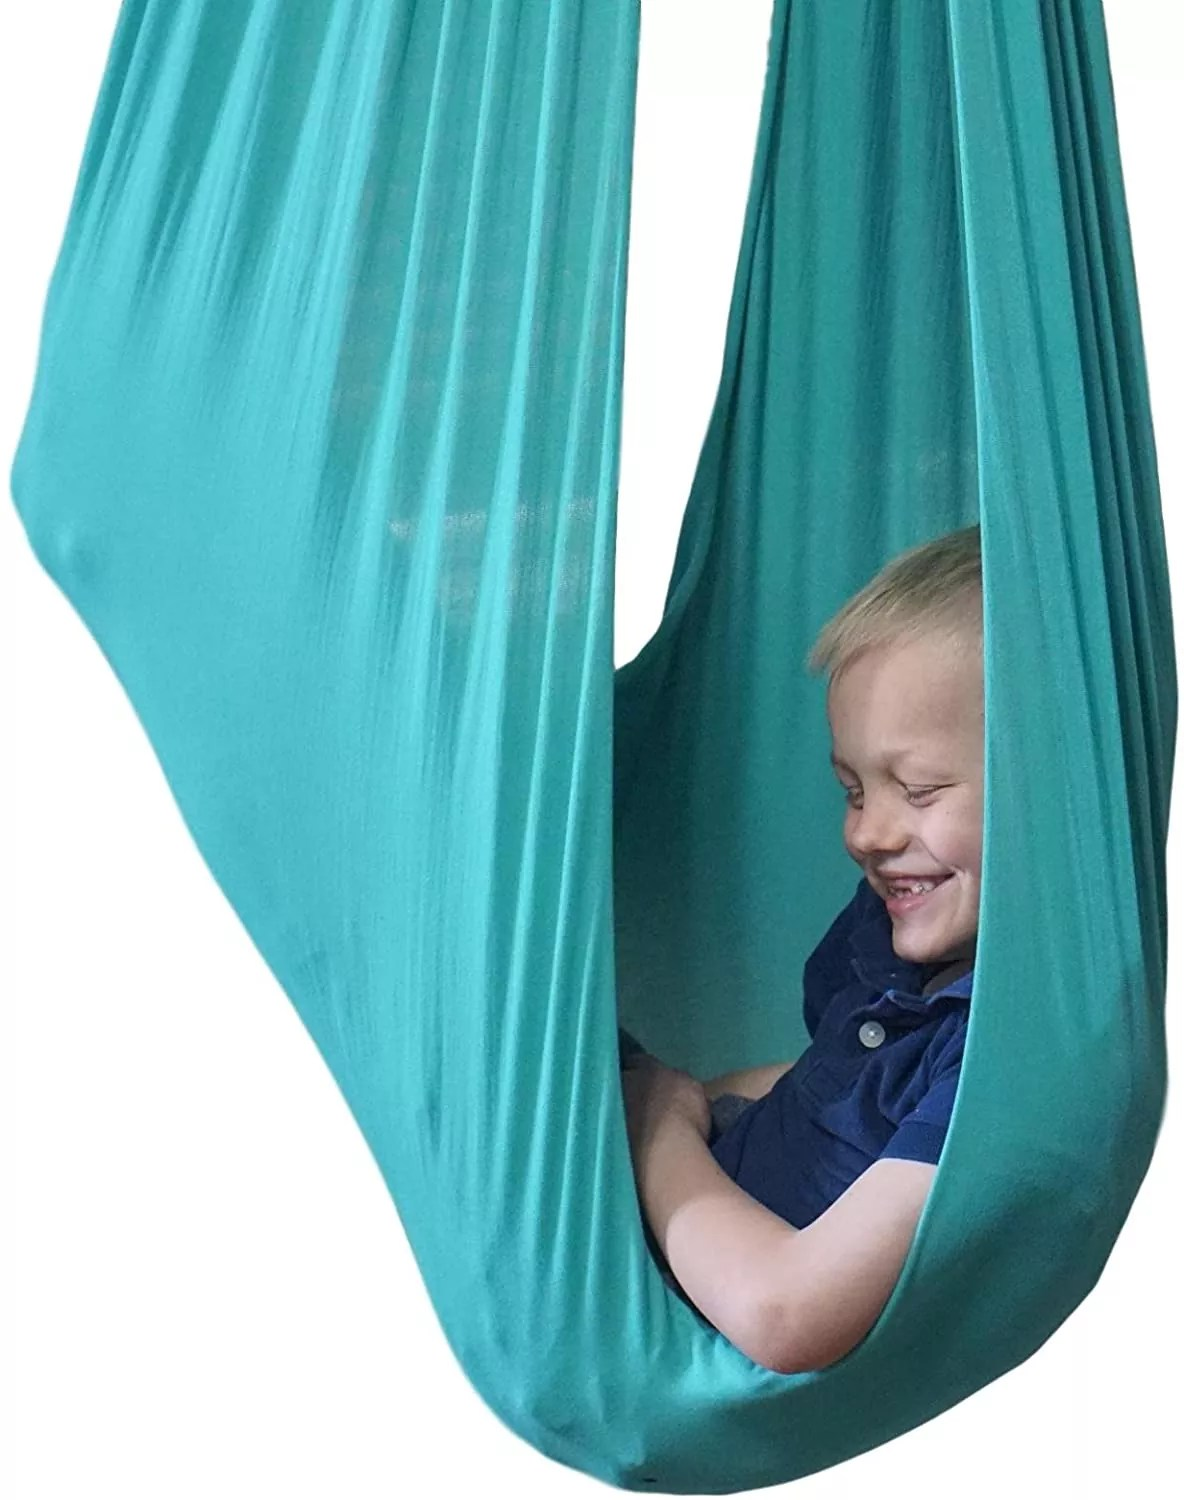 Indoor Therapy Swing for Kids with Special Needs by Sensory4u